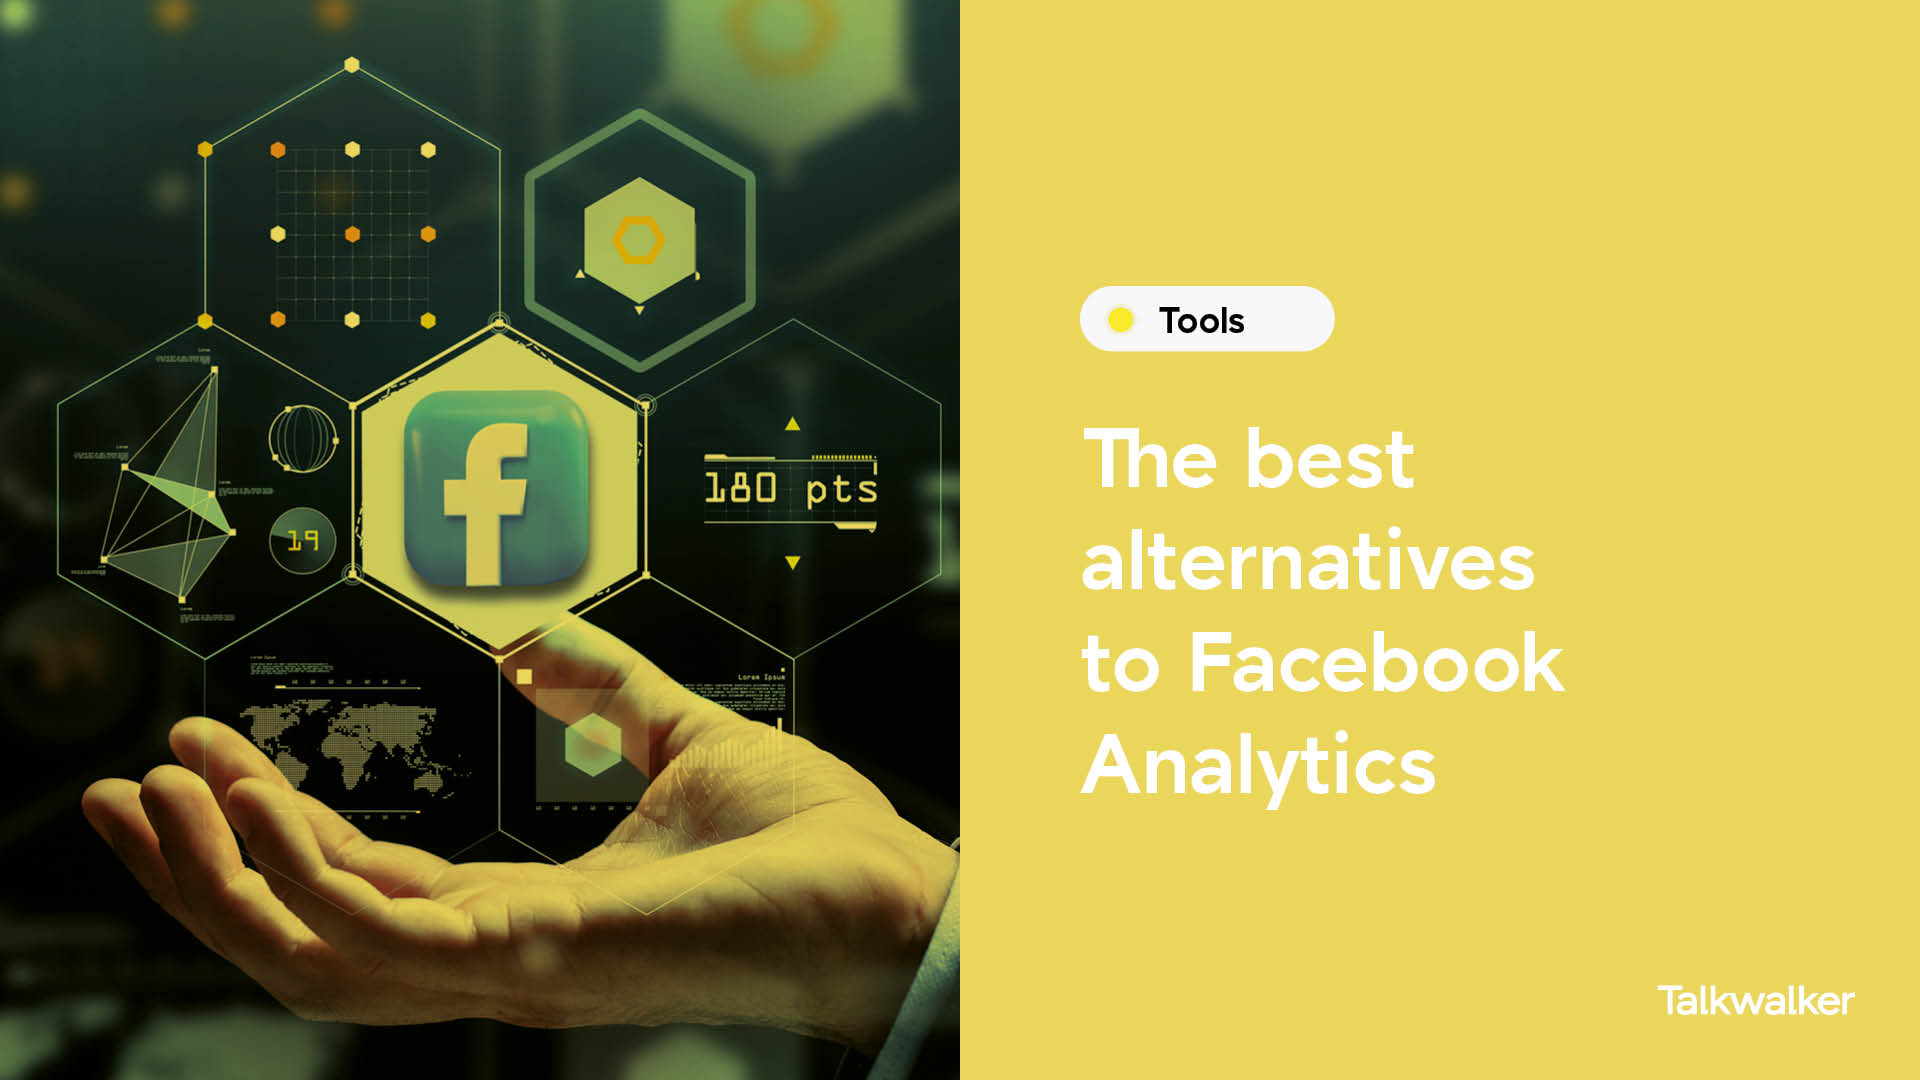 Facebook Analytics alternatives - a hand holding a Facebook logo